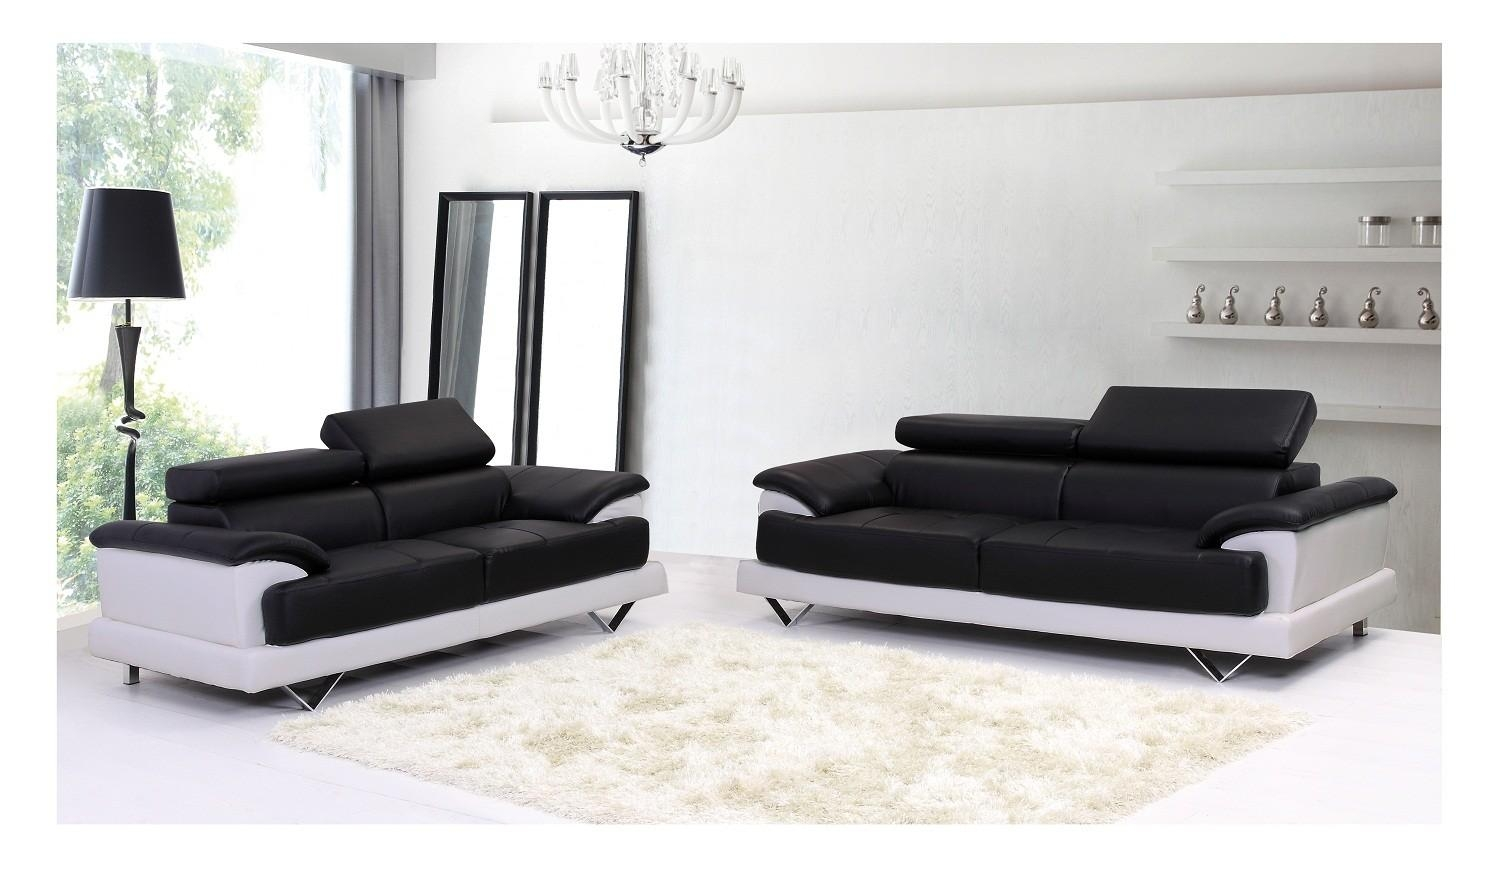 Sofas Center : Dreaded Black And White Sofa Photos Inspirations Intended For Black And White Sofas And Loveseats (Image 16 of 20)